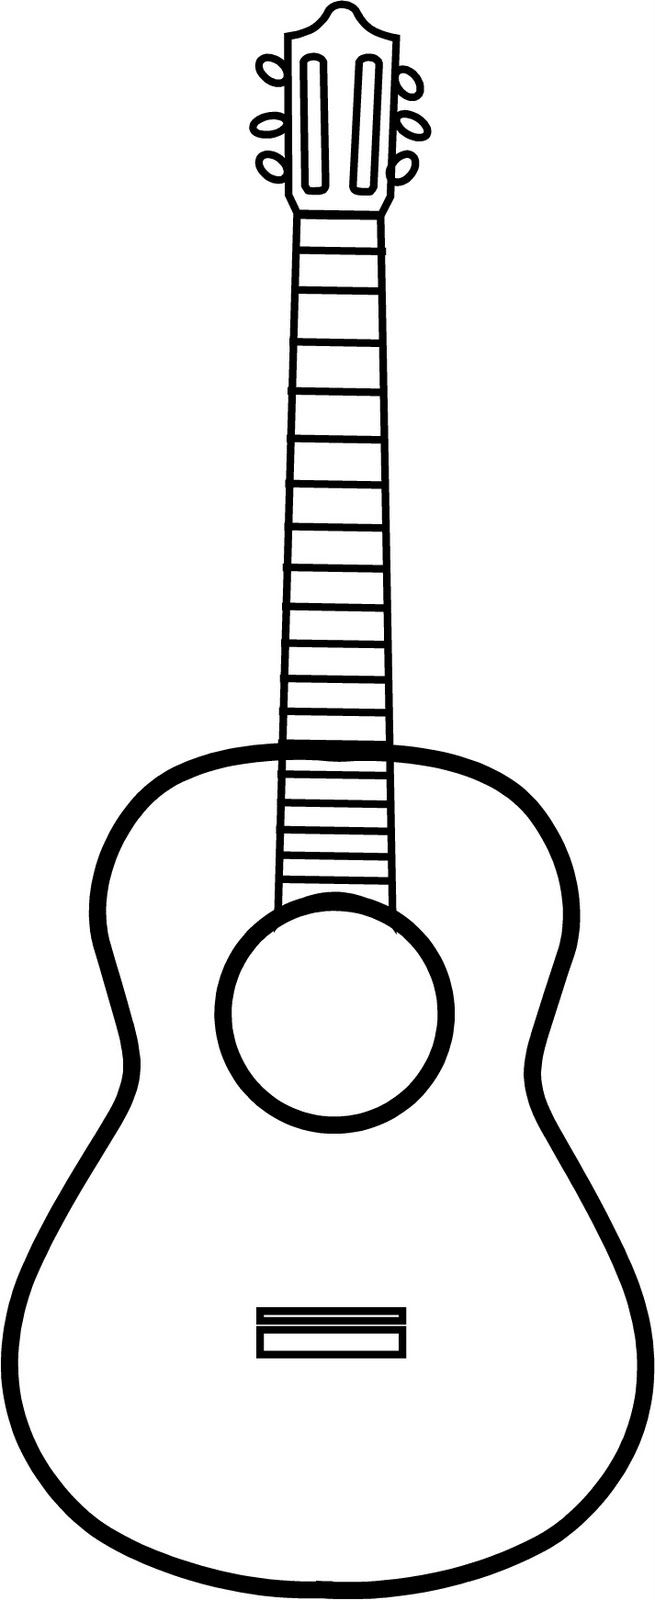 Drawn musical hand holding Go: Outline Best Guitar Guitar